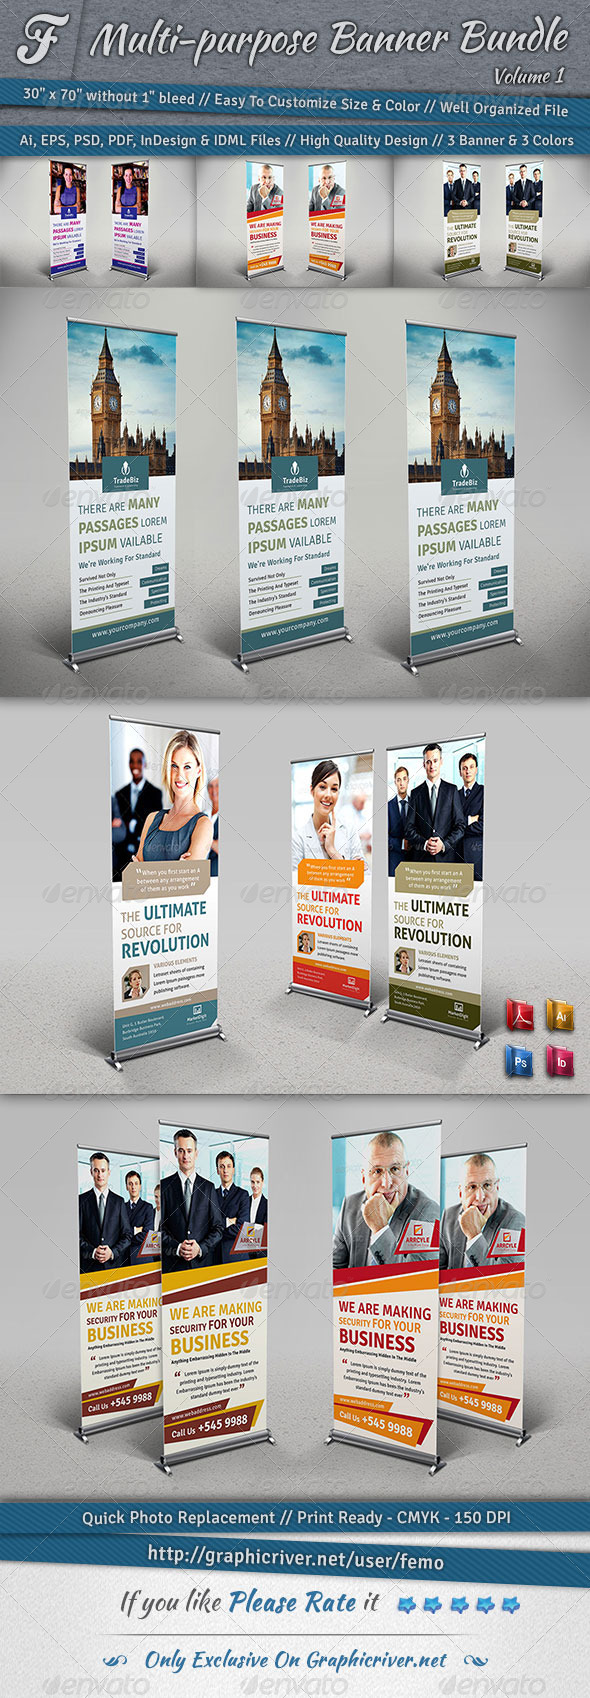 Multi-purpose Banner Bundle | Volume 1 - Signage Print Templates